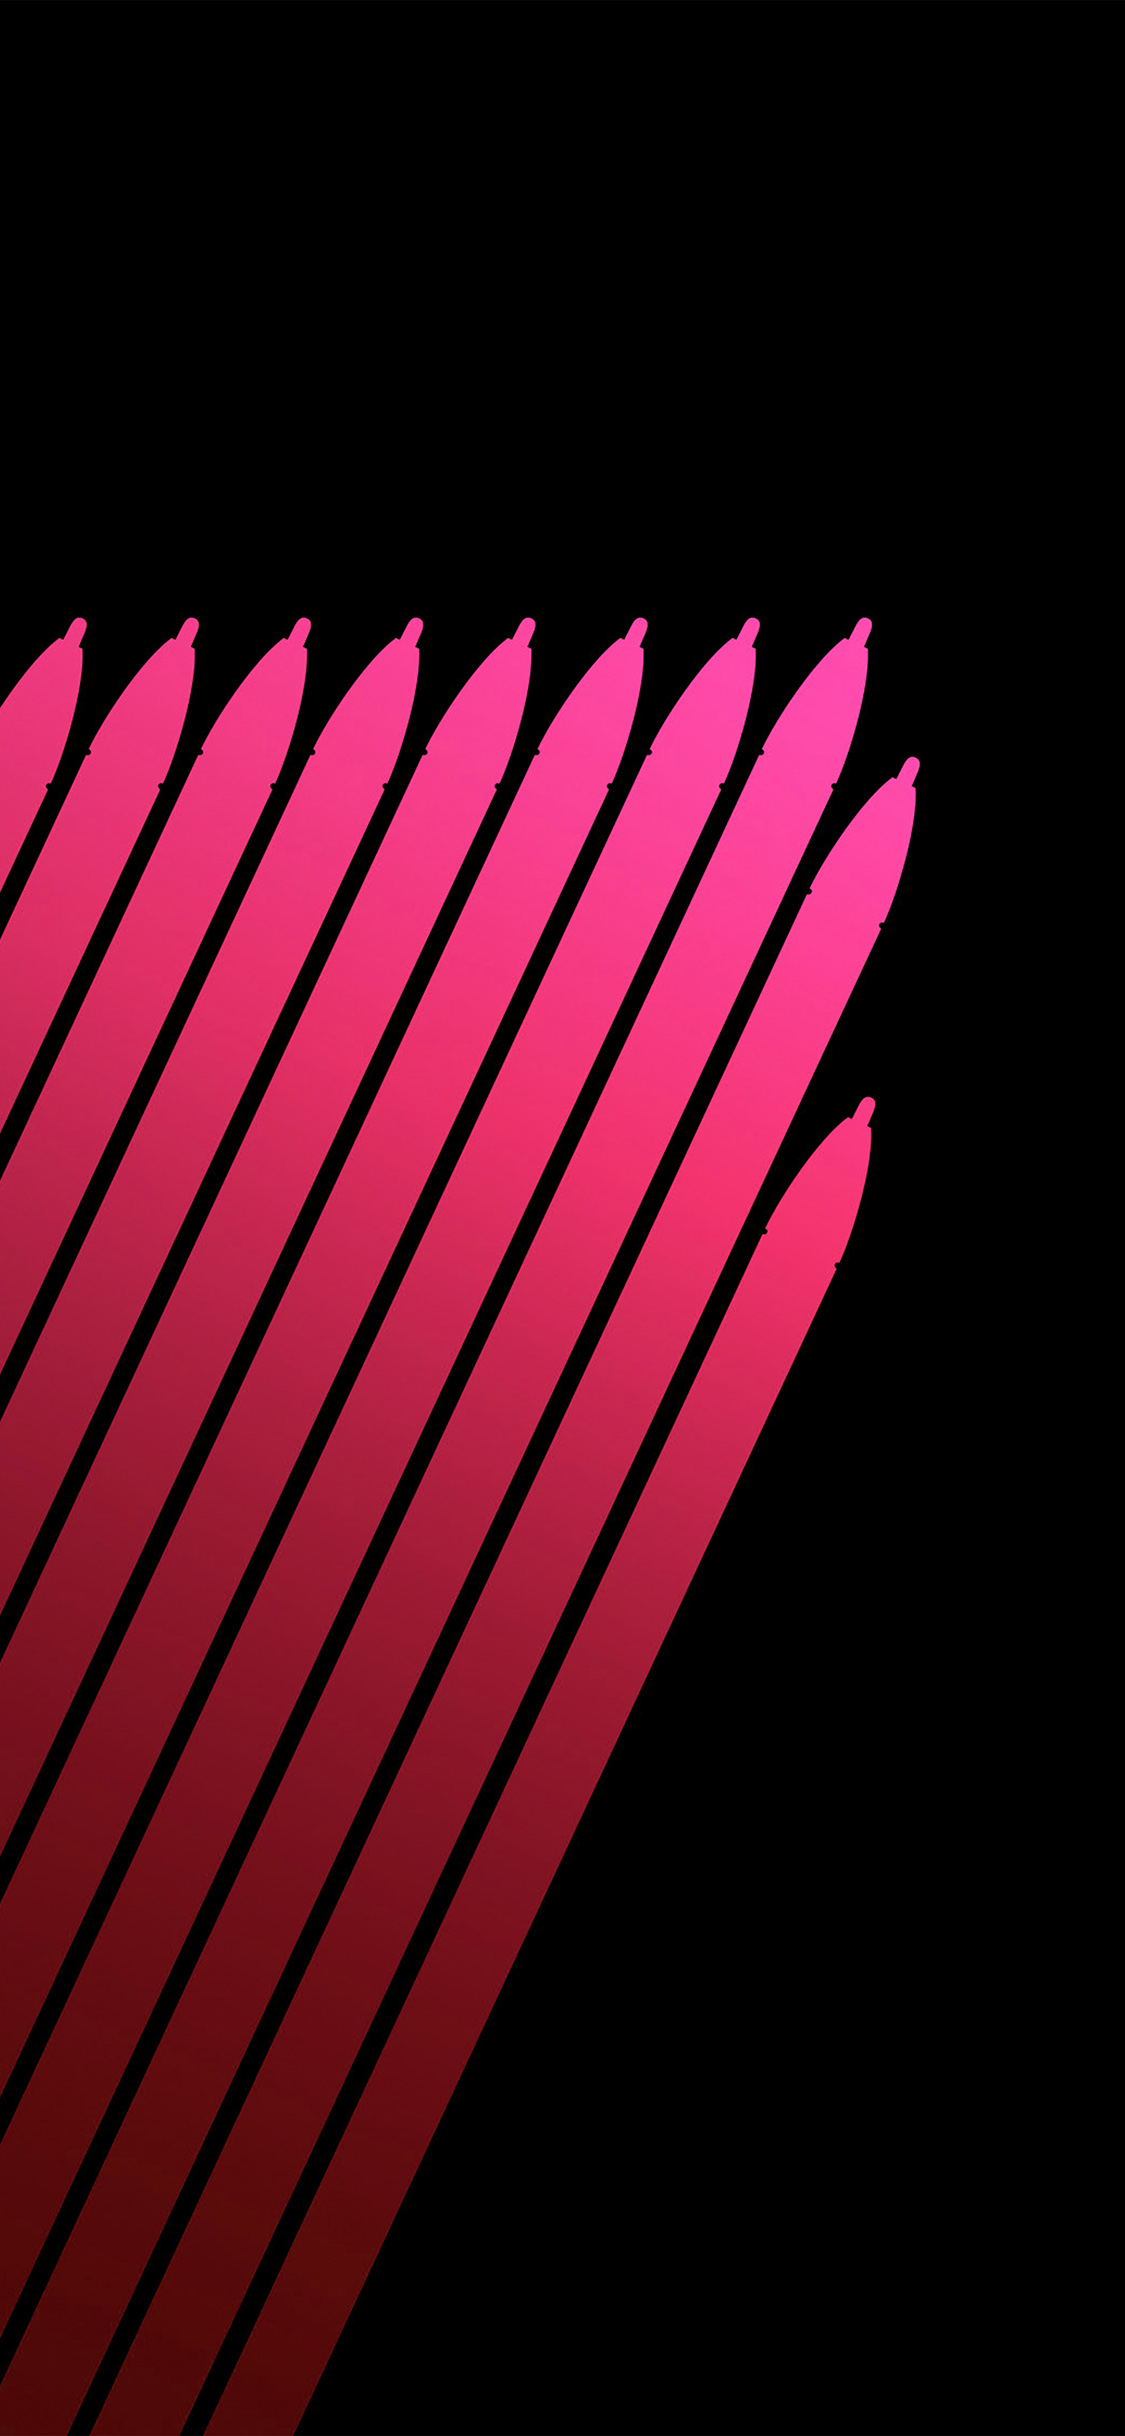 papers.co vq93 note 7 galaxy art pen dark red magenta pattern 41 iphone wallpaper